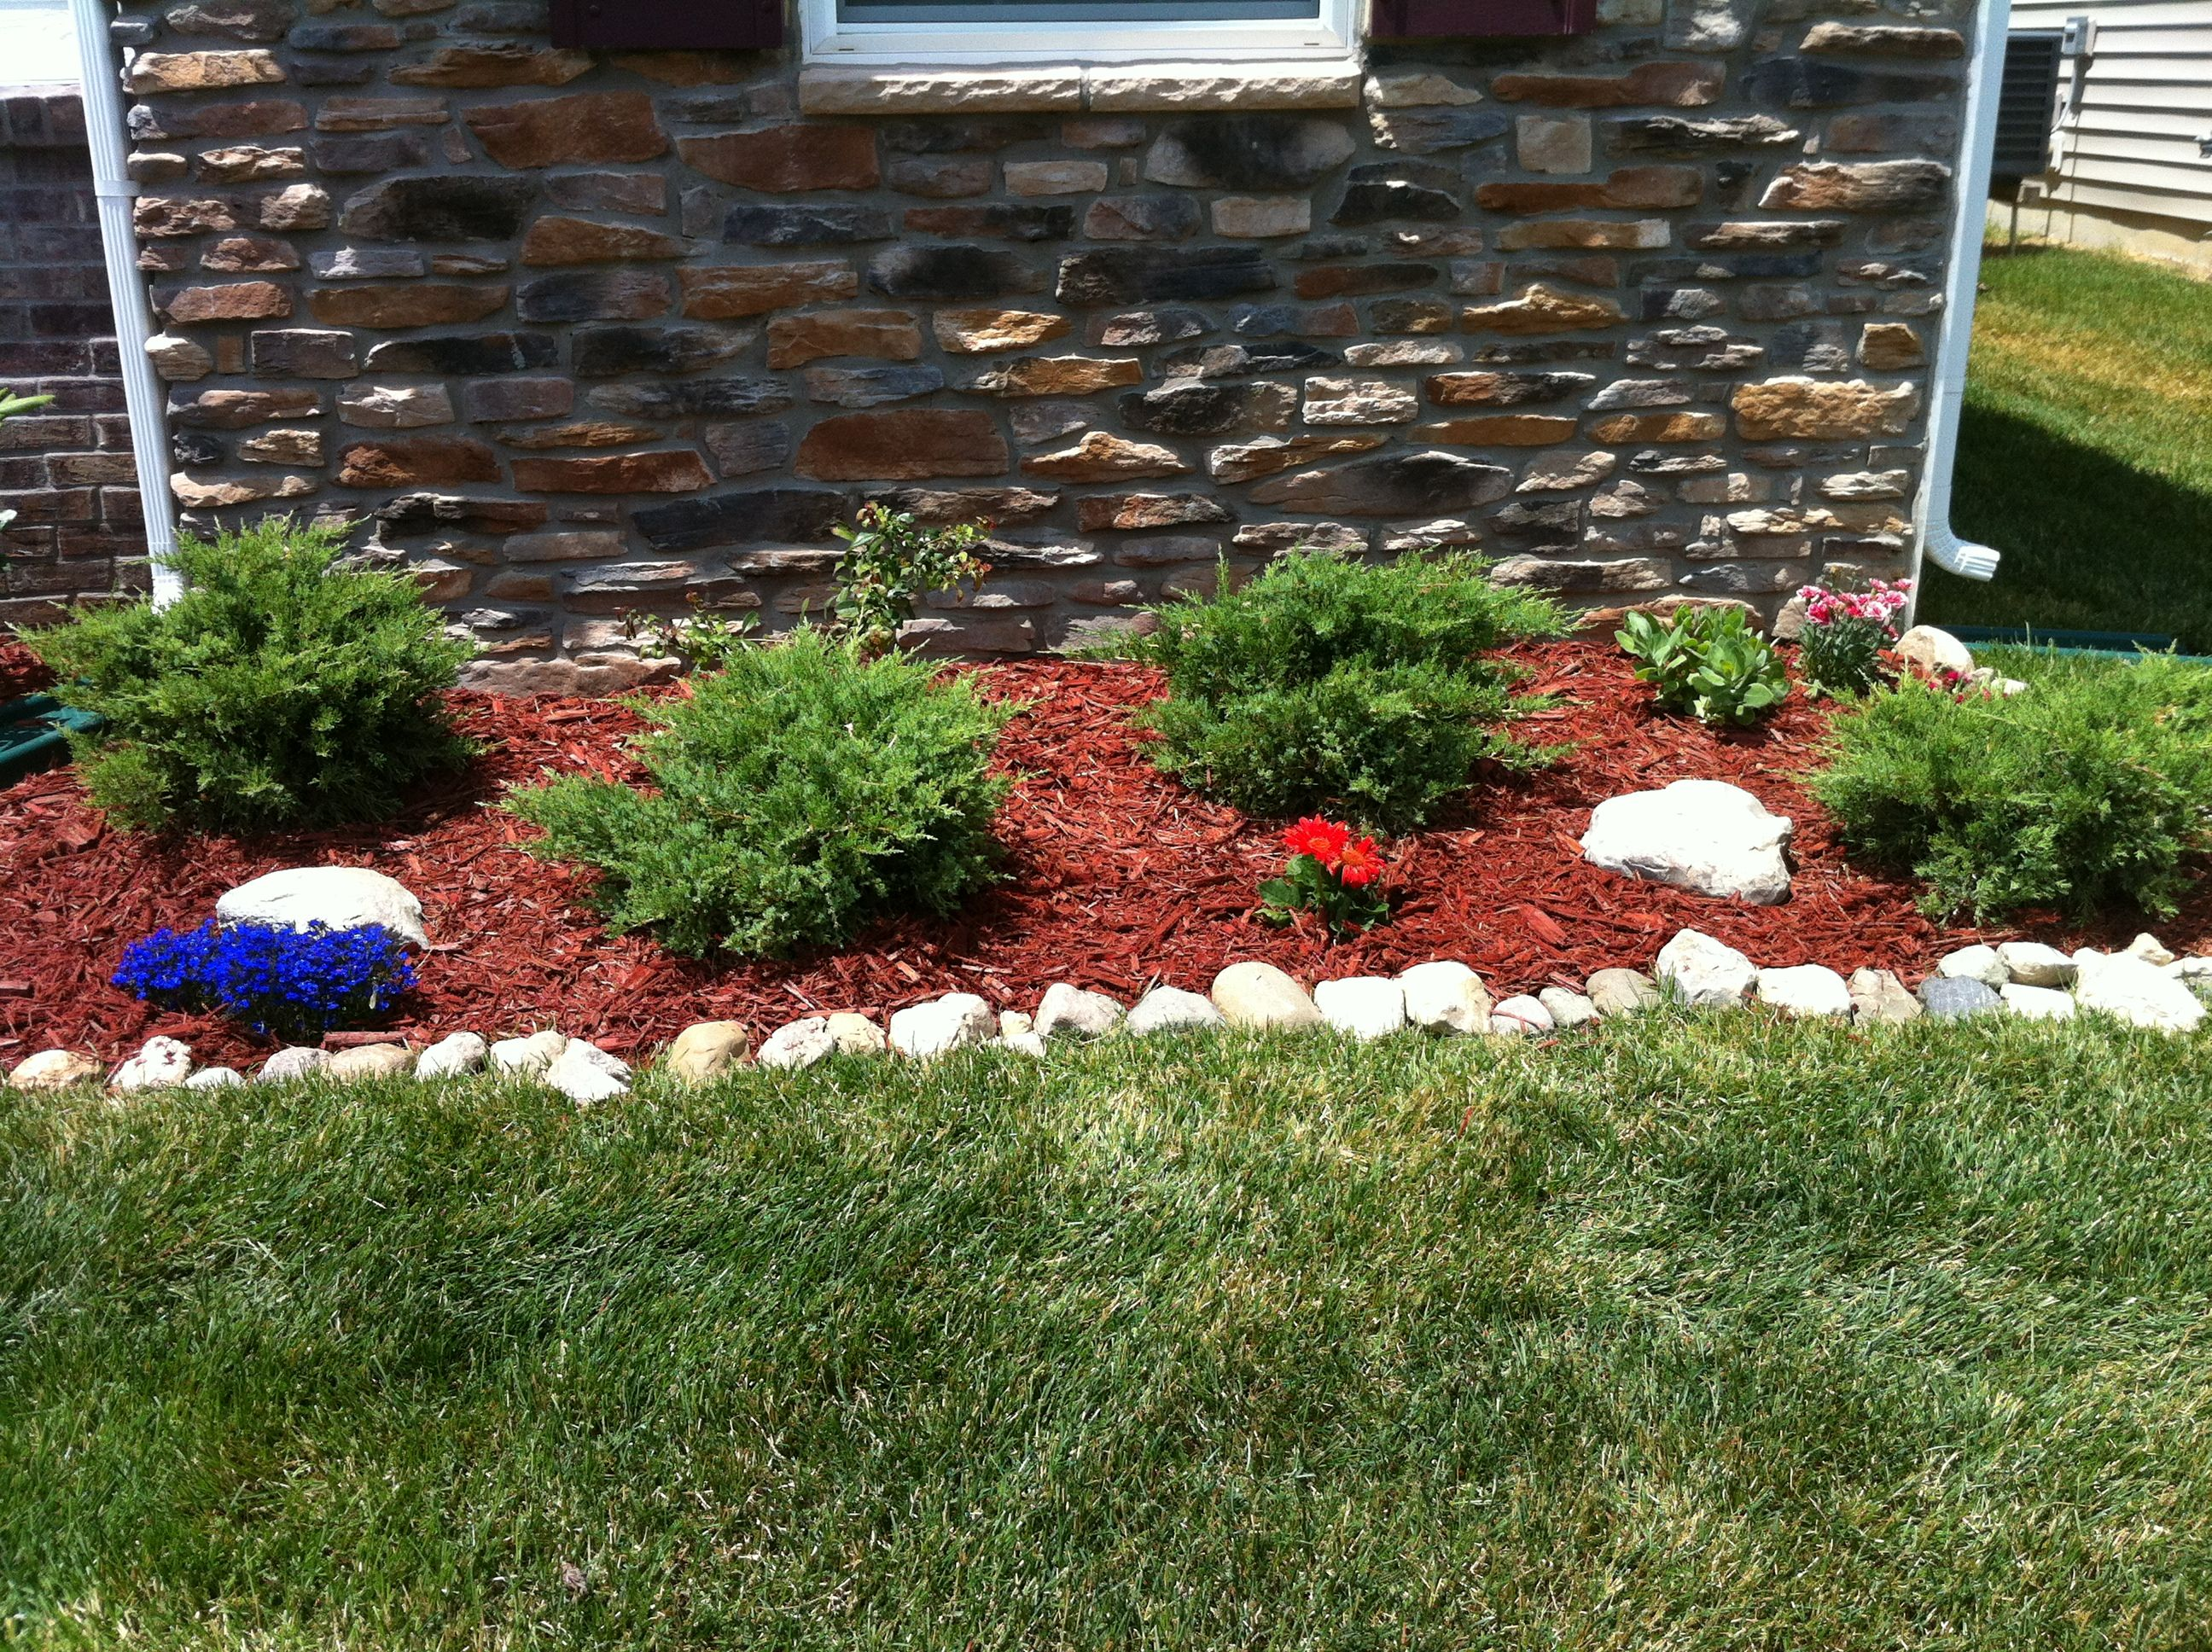 Flower bed by the garage landscaping ideas pinterest for Garden bed ideas pinterest